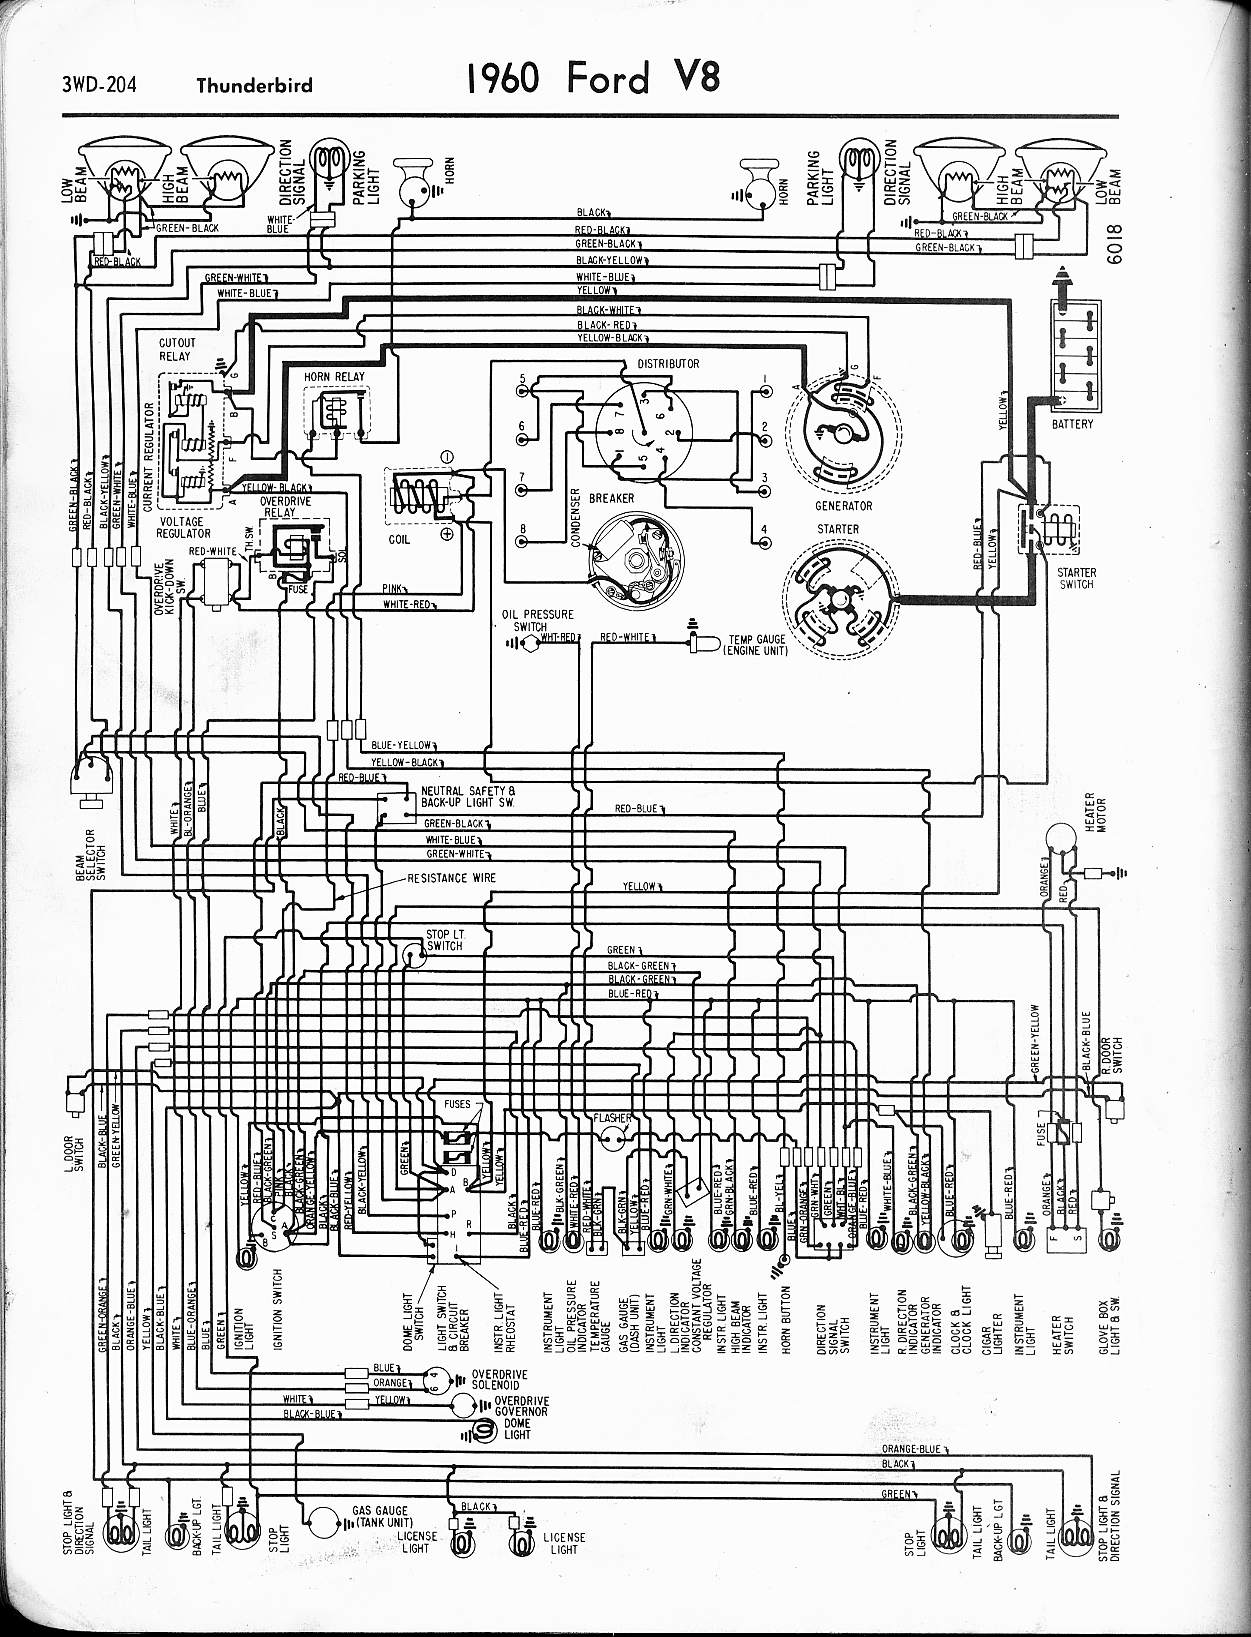 1956 ford fairlane wiring diagram simple wiring diagram rh david huggett co  uk ford f600 dump